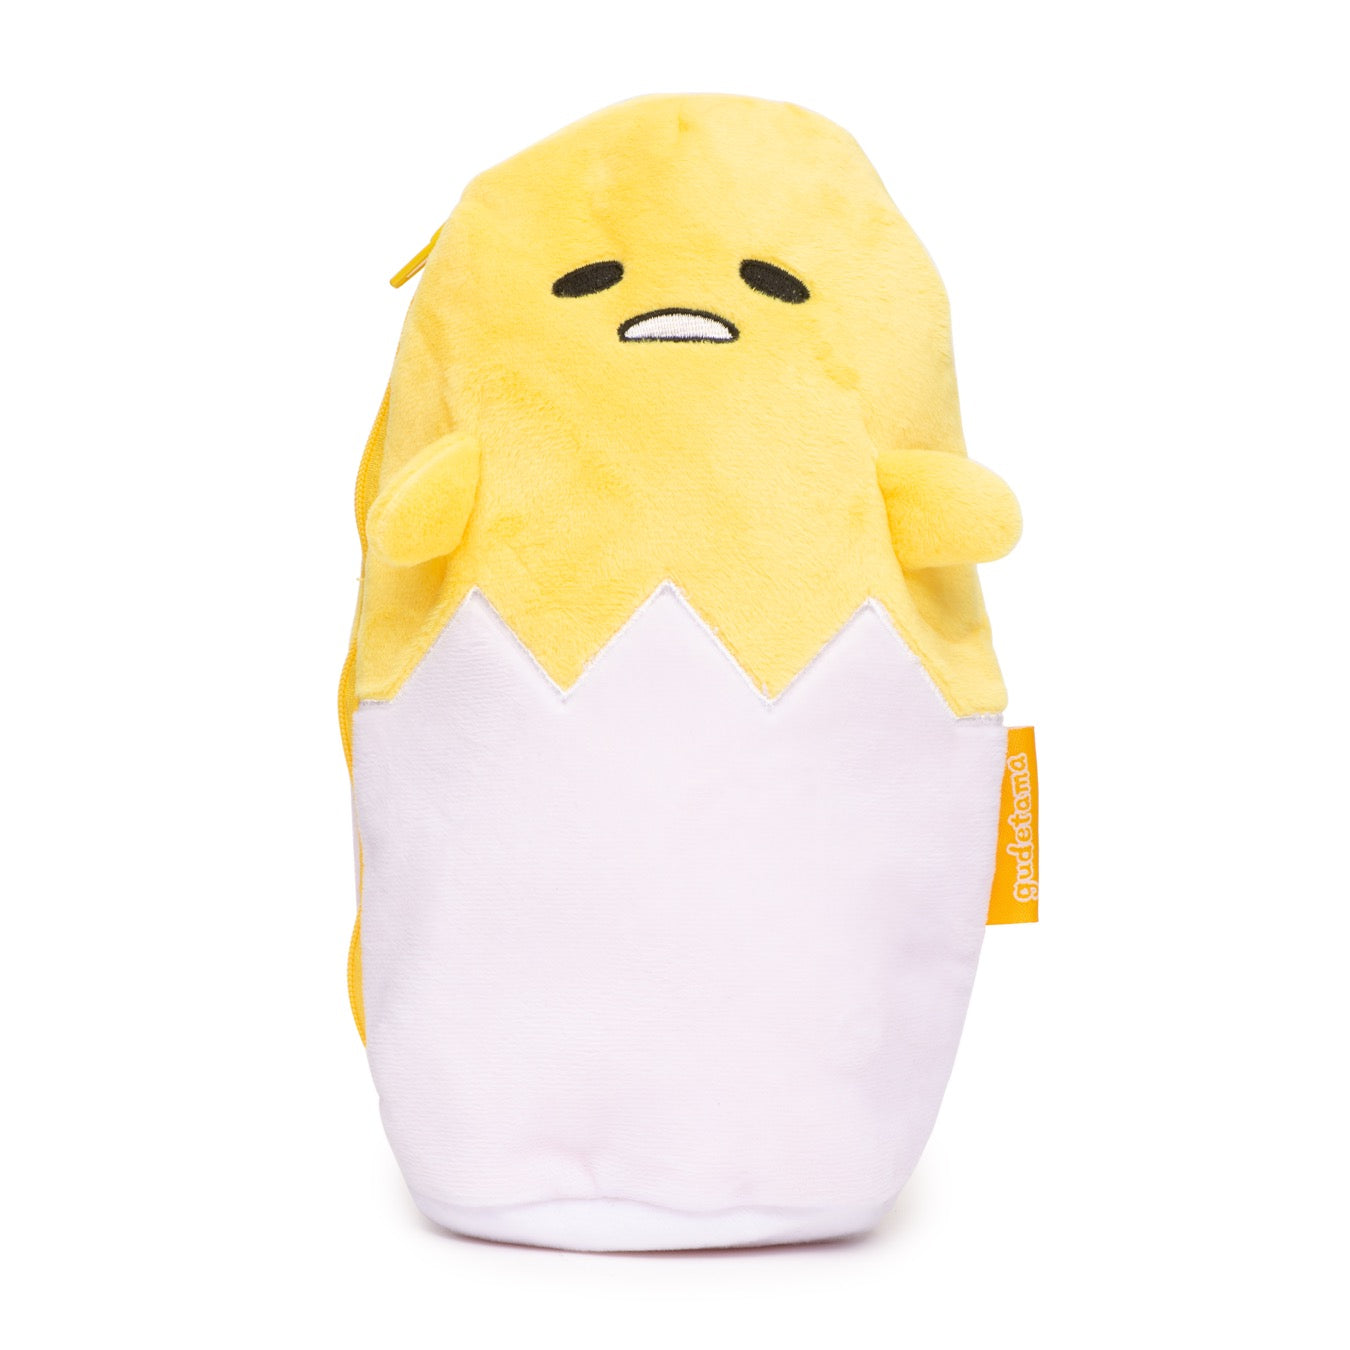 Gudetama Plush Pencil Case